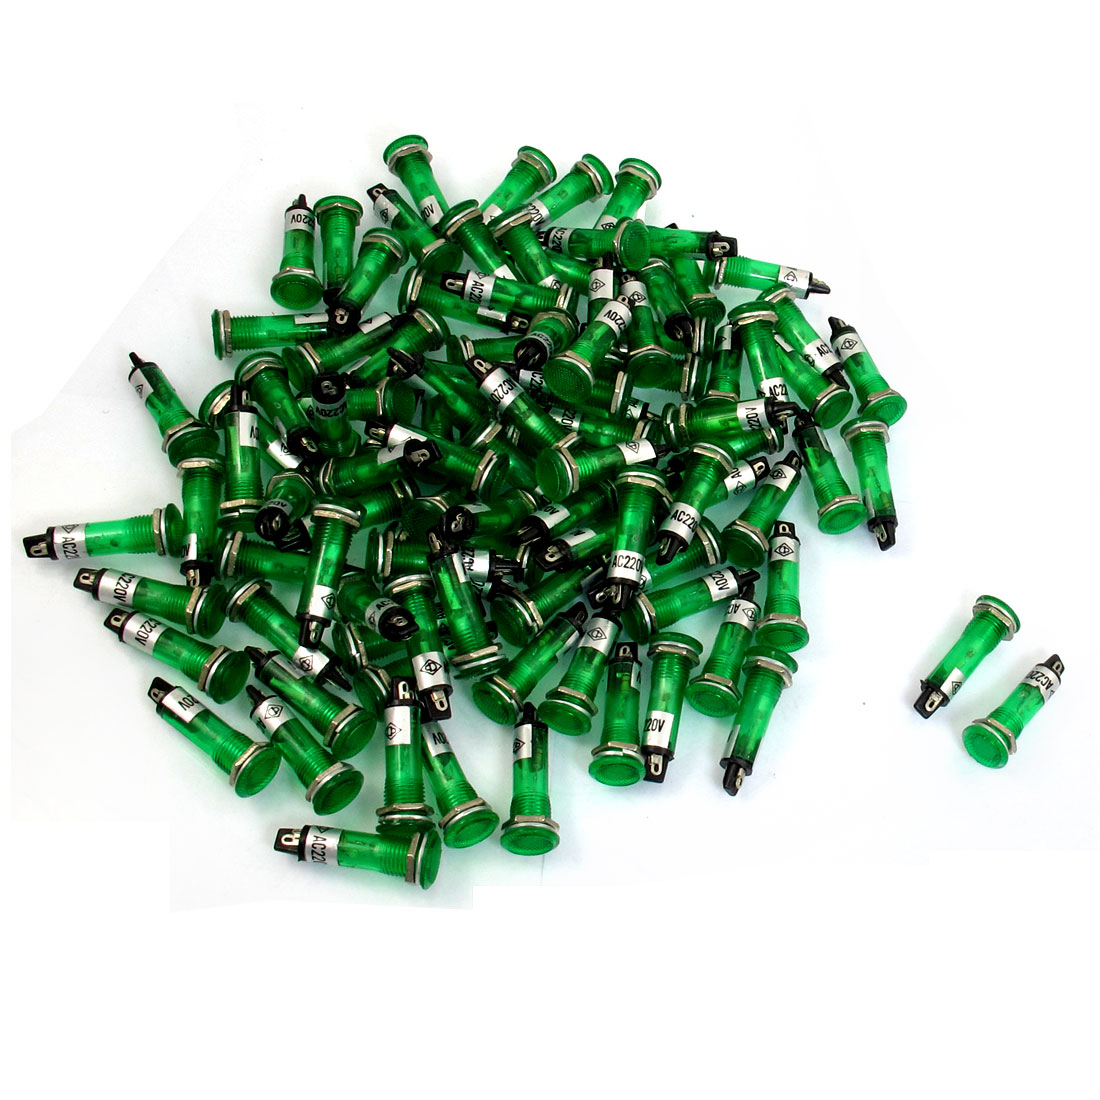 100-Pcs-2-Pins-Recessed-Green-Pilot-Light-Signal-Indicator-Lamp-AC-220V